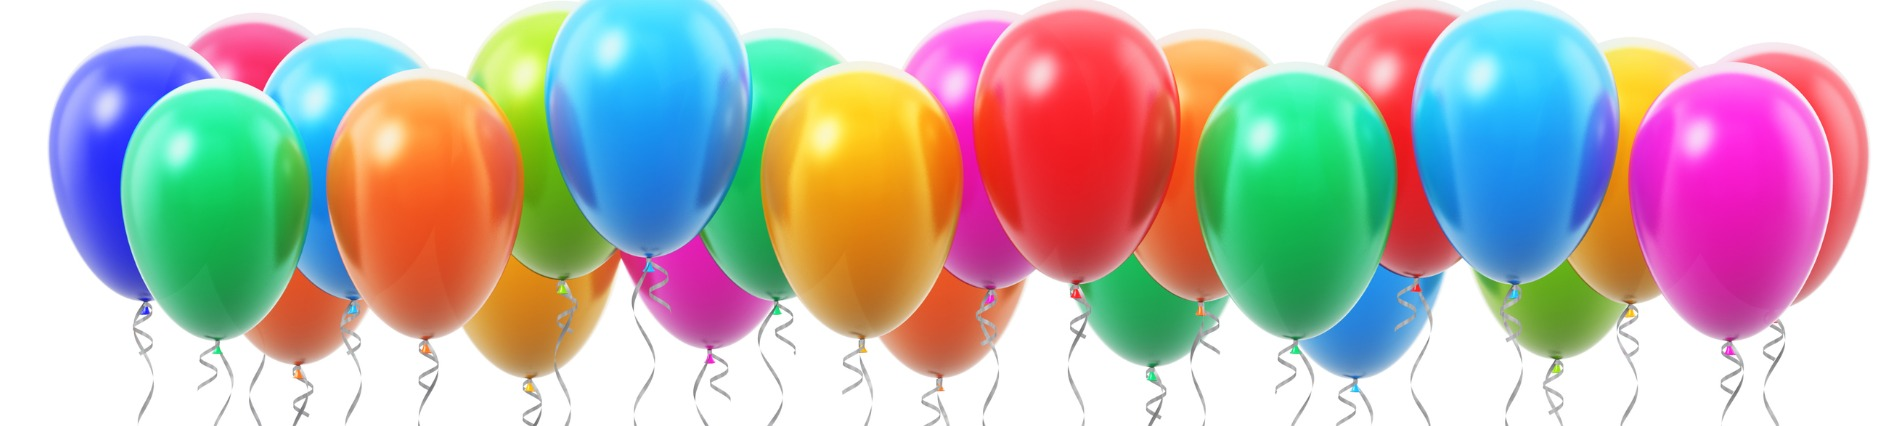 colourful birthday balloons